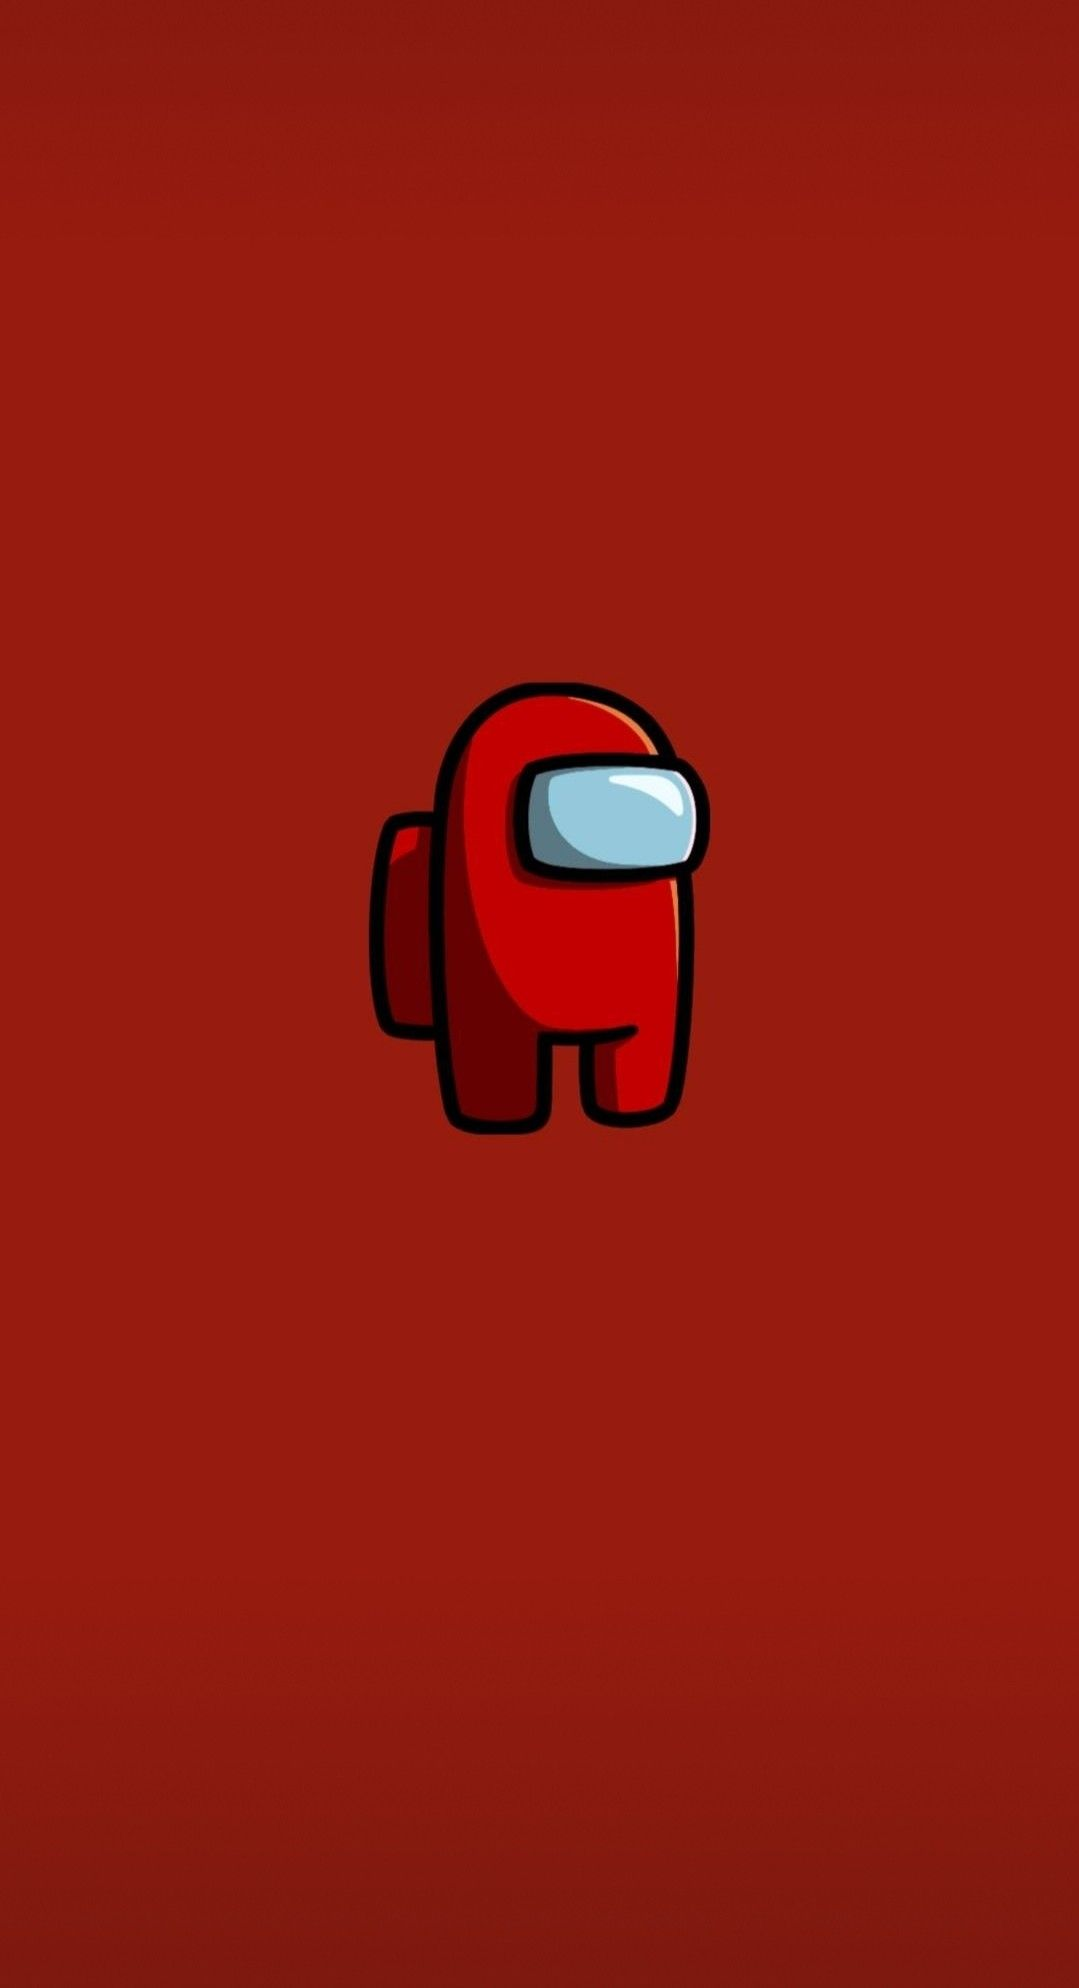 Among Us Red Color In 2021 Cartoon Wallpaper Iphone Funny Phone Wallpaper Wallpaper Iphone Cute